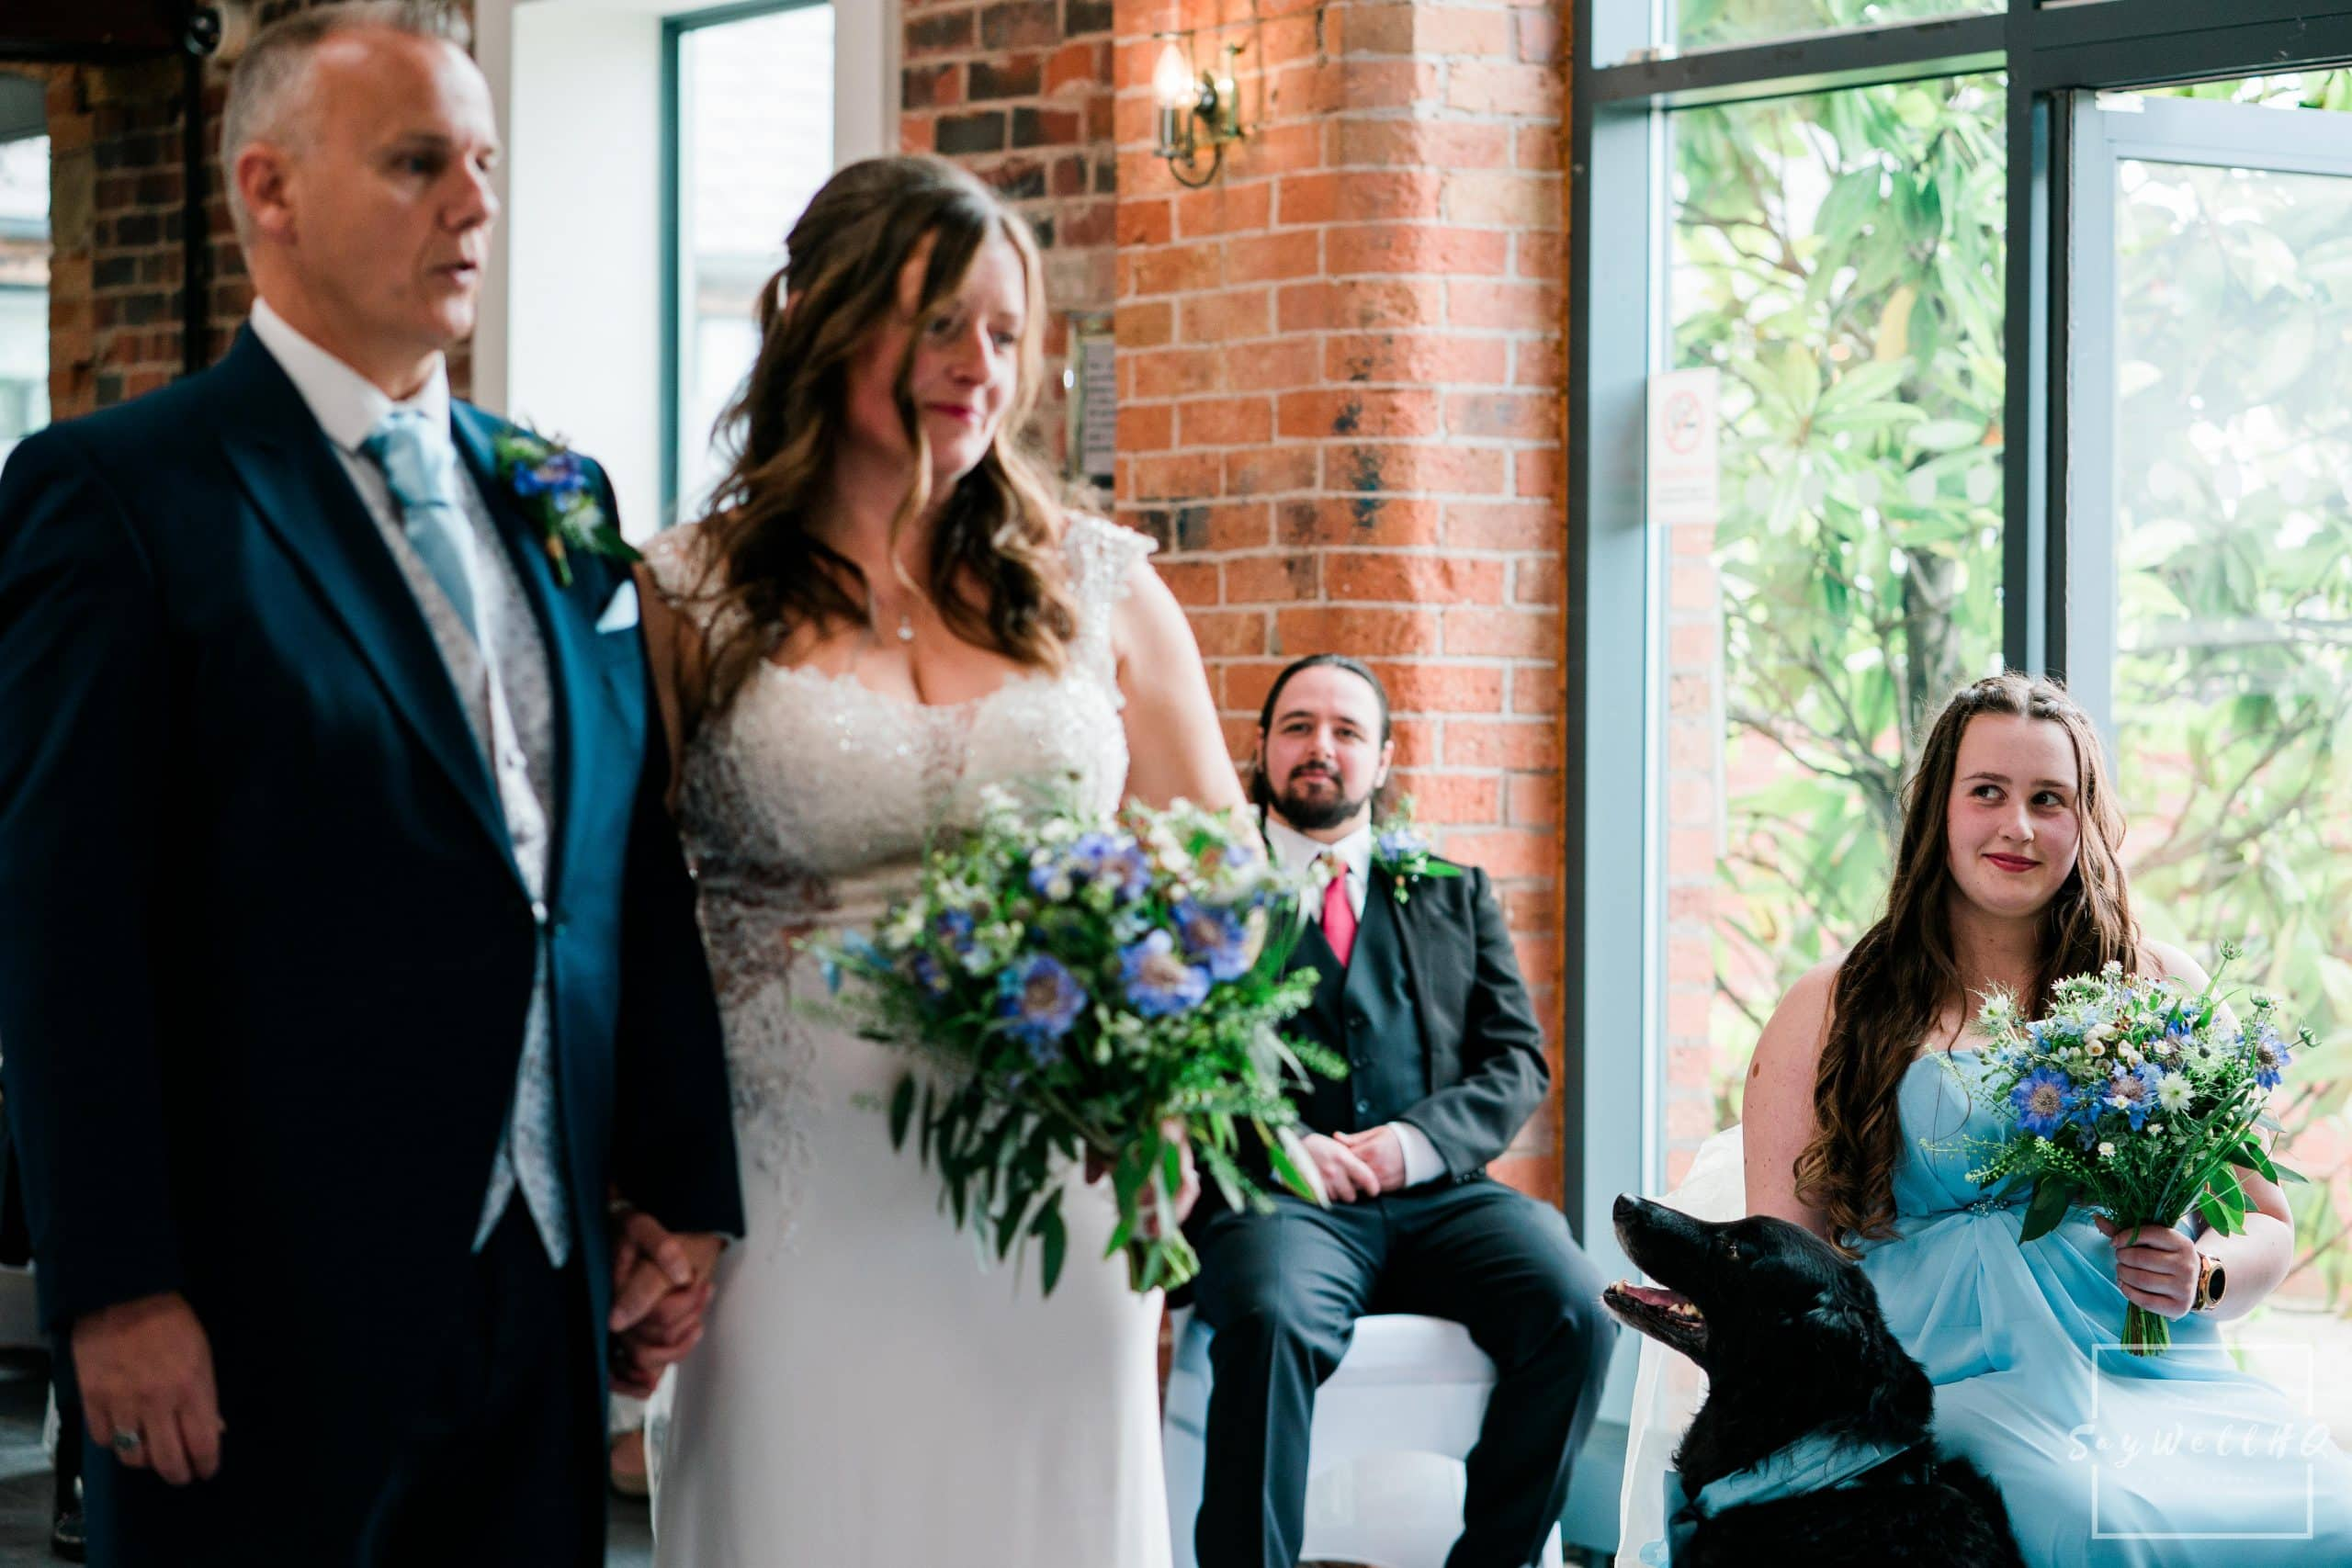 Daughter of the bride looks on at her mum getting married at a Goosedale wedding during the covid 19 restrictions - Wedding Photography by goosedale wedding photographer Andy Saywell of SaywellHQ